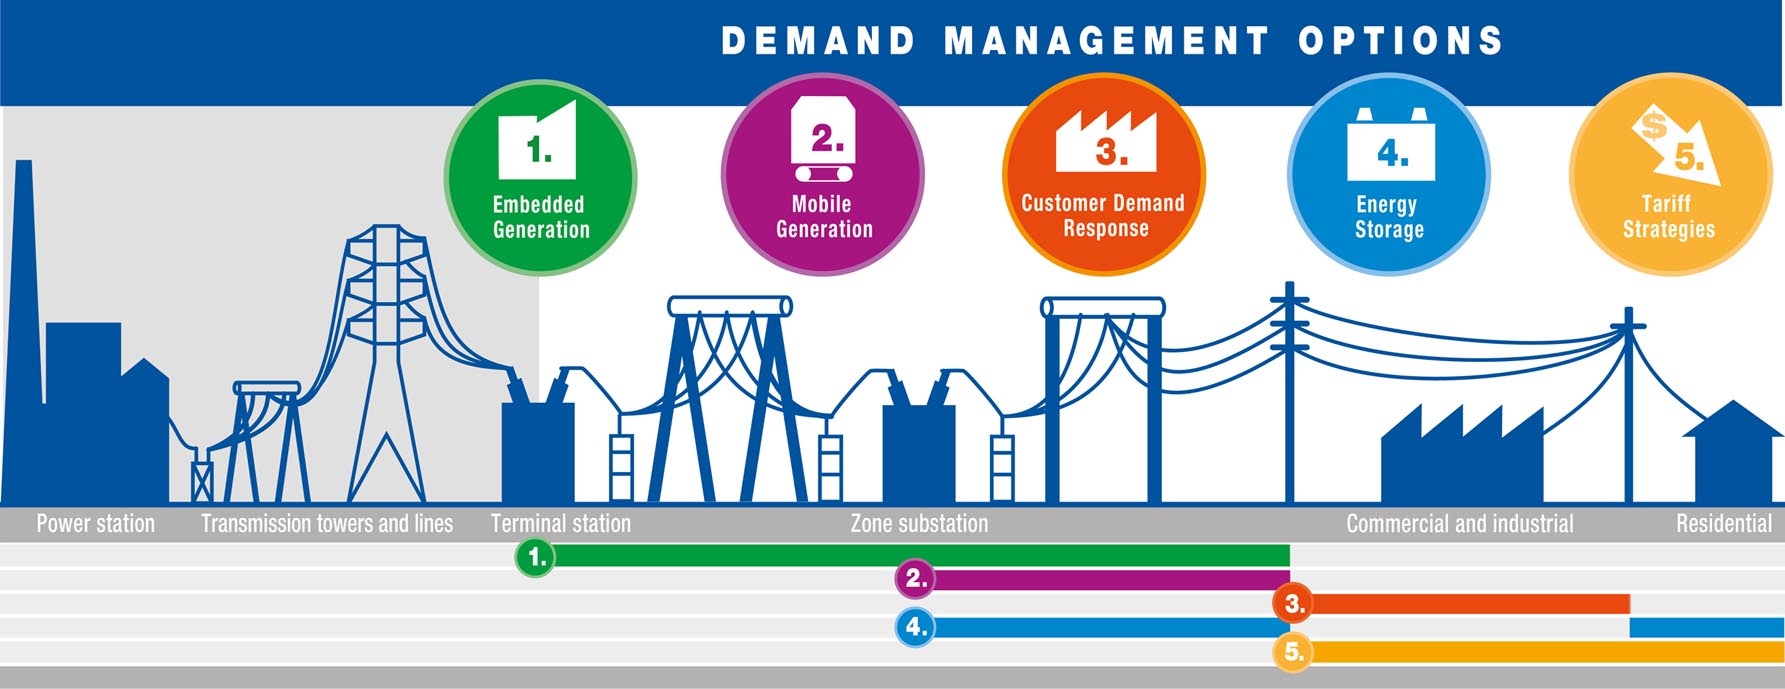 Demand Management Options thumbnail